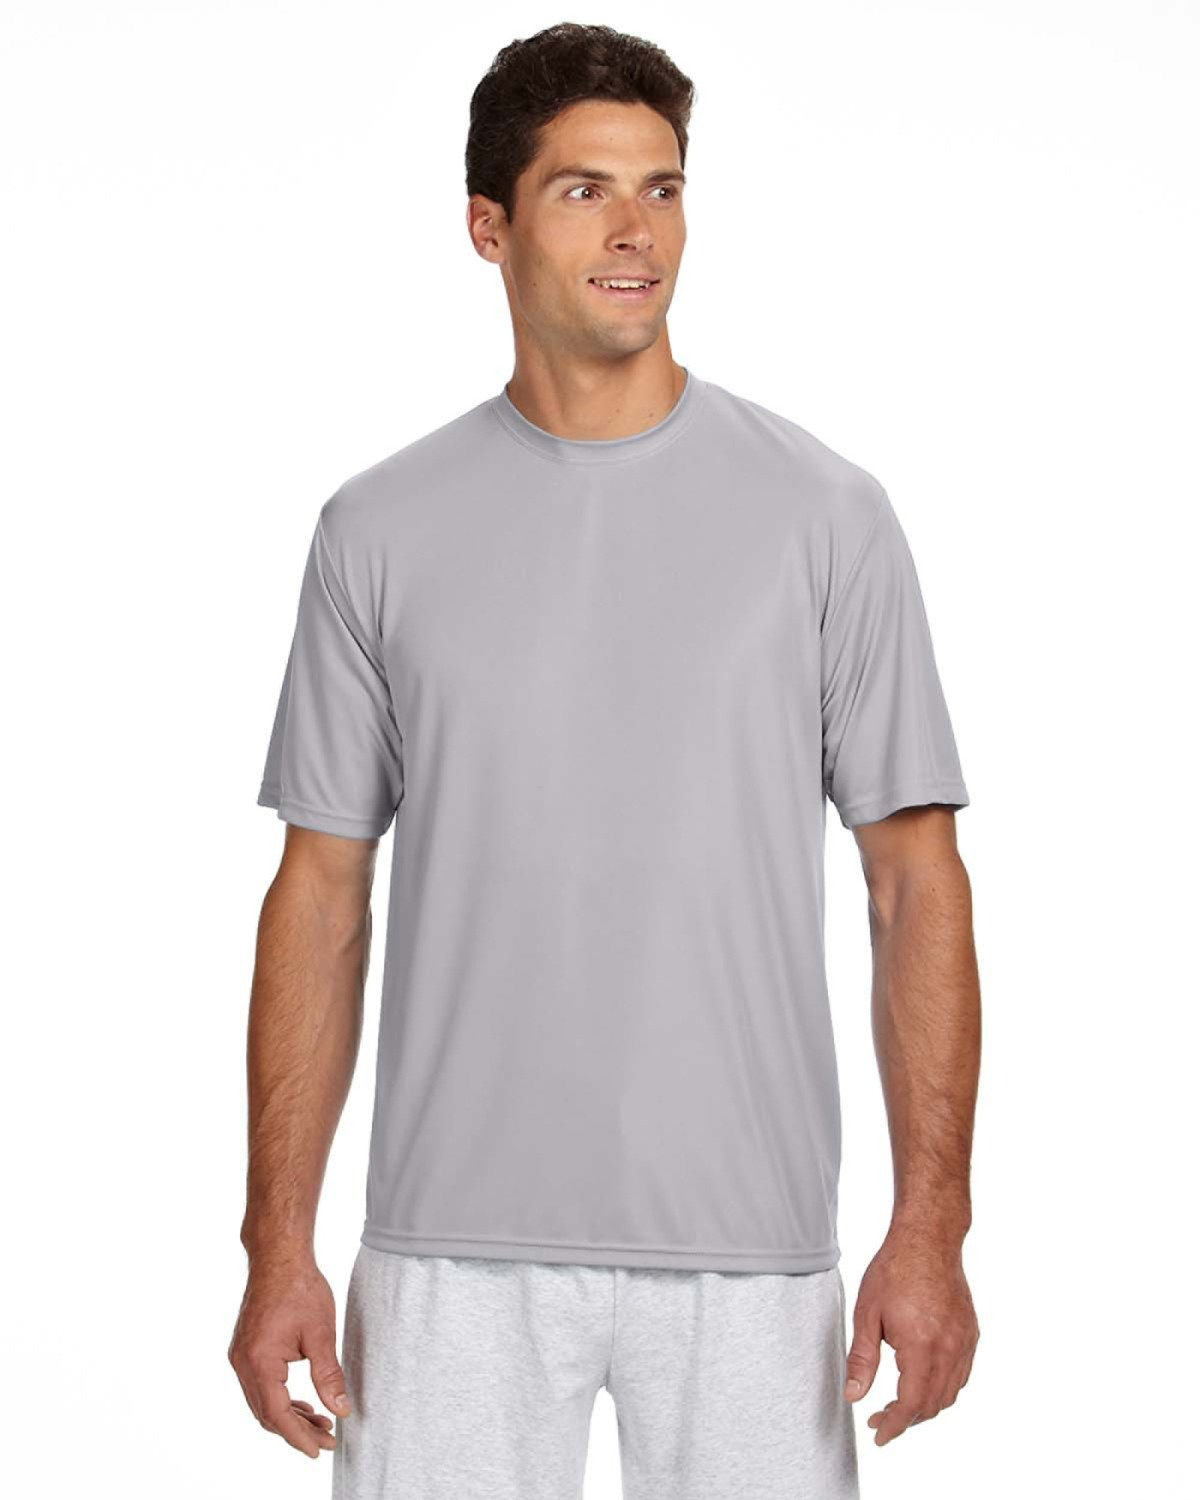 A4 Men's Cooling Performance Crew Short Sleeve Tee Moshay Inc. N3142